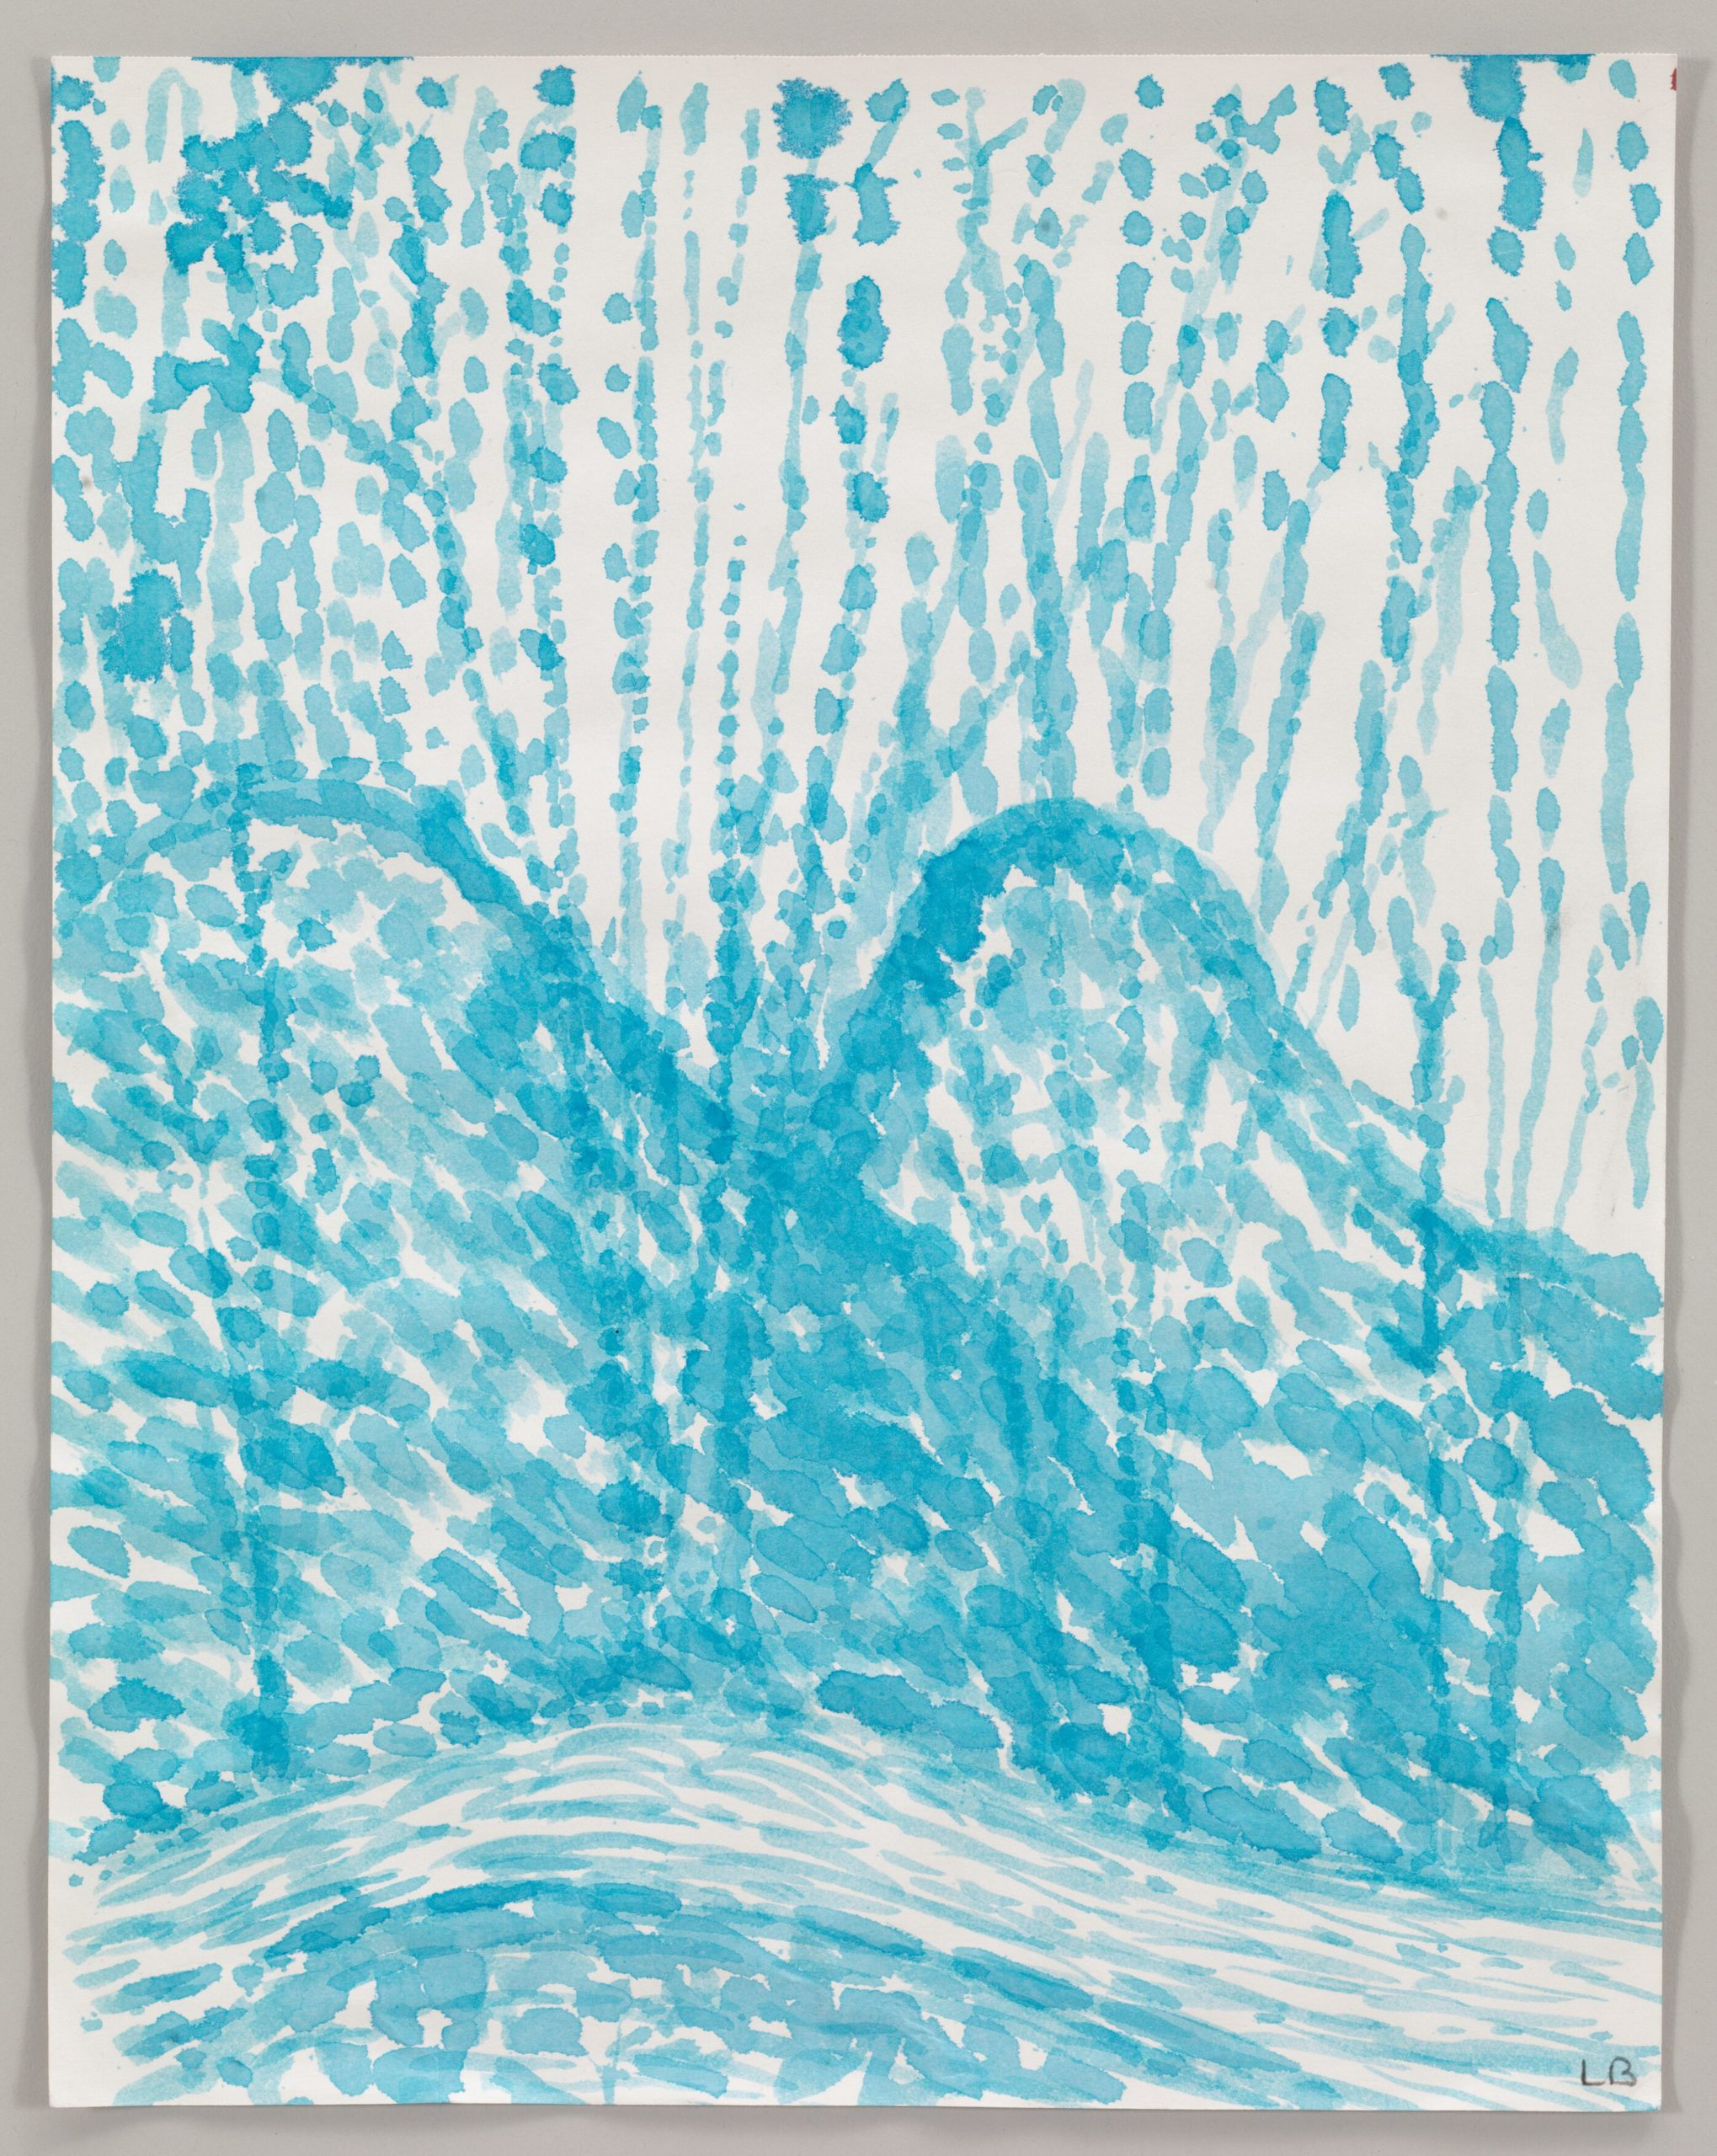 Louise Bourgeois   Untitled 2003 Watercolor on paper 28.9 x 22.9 cm / 11 3/8 x 9 in Photo: Christopher Burke © The Easton Foundation / 2020, ProLitteris, Zurich Courtesy The Easton Foundation and Hauser & Wirth